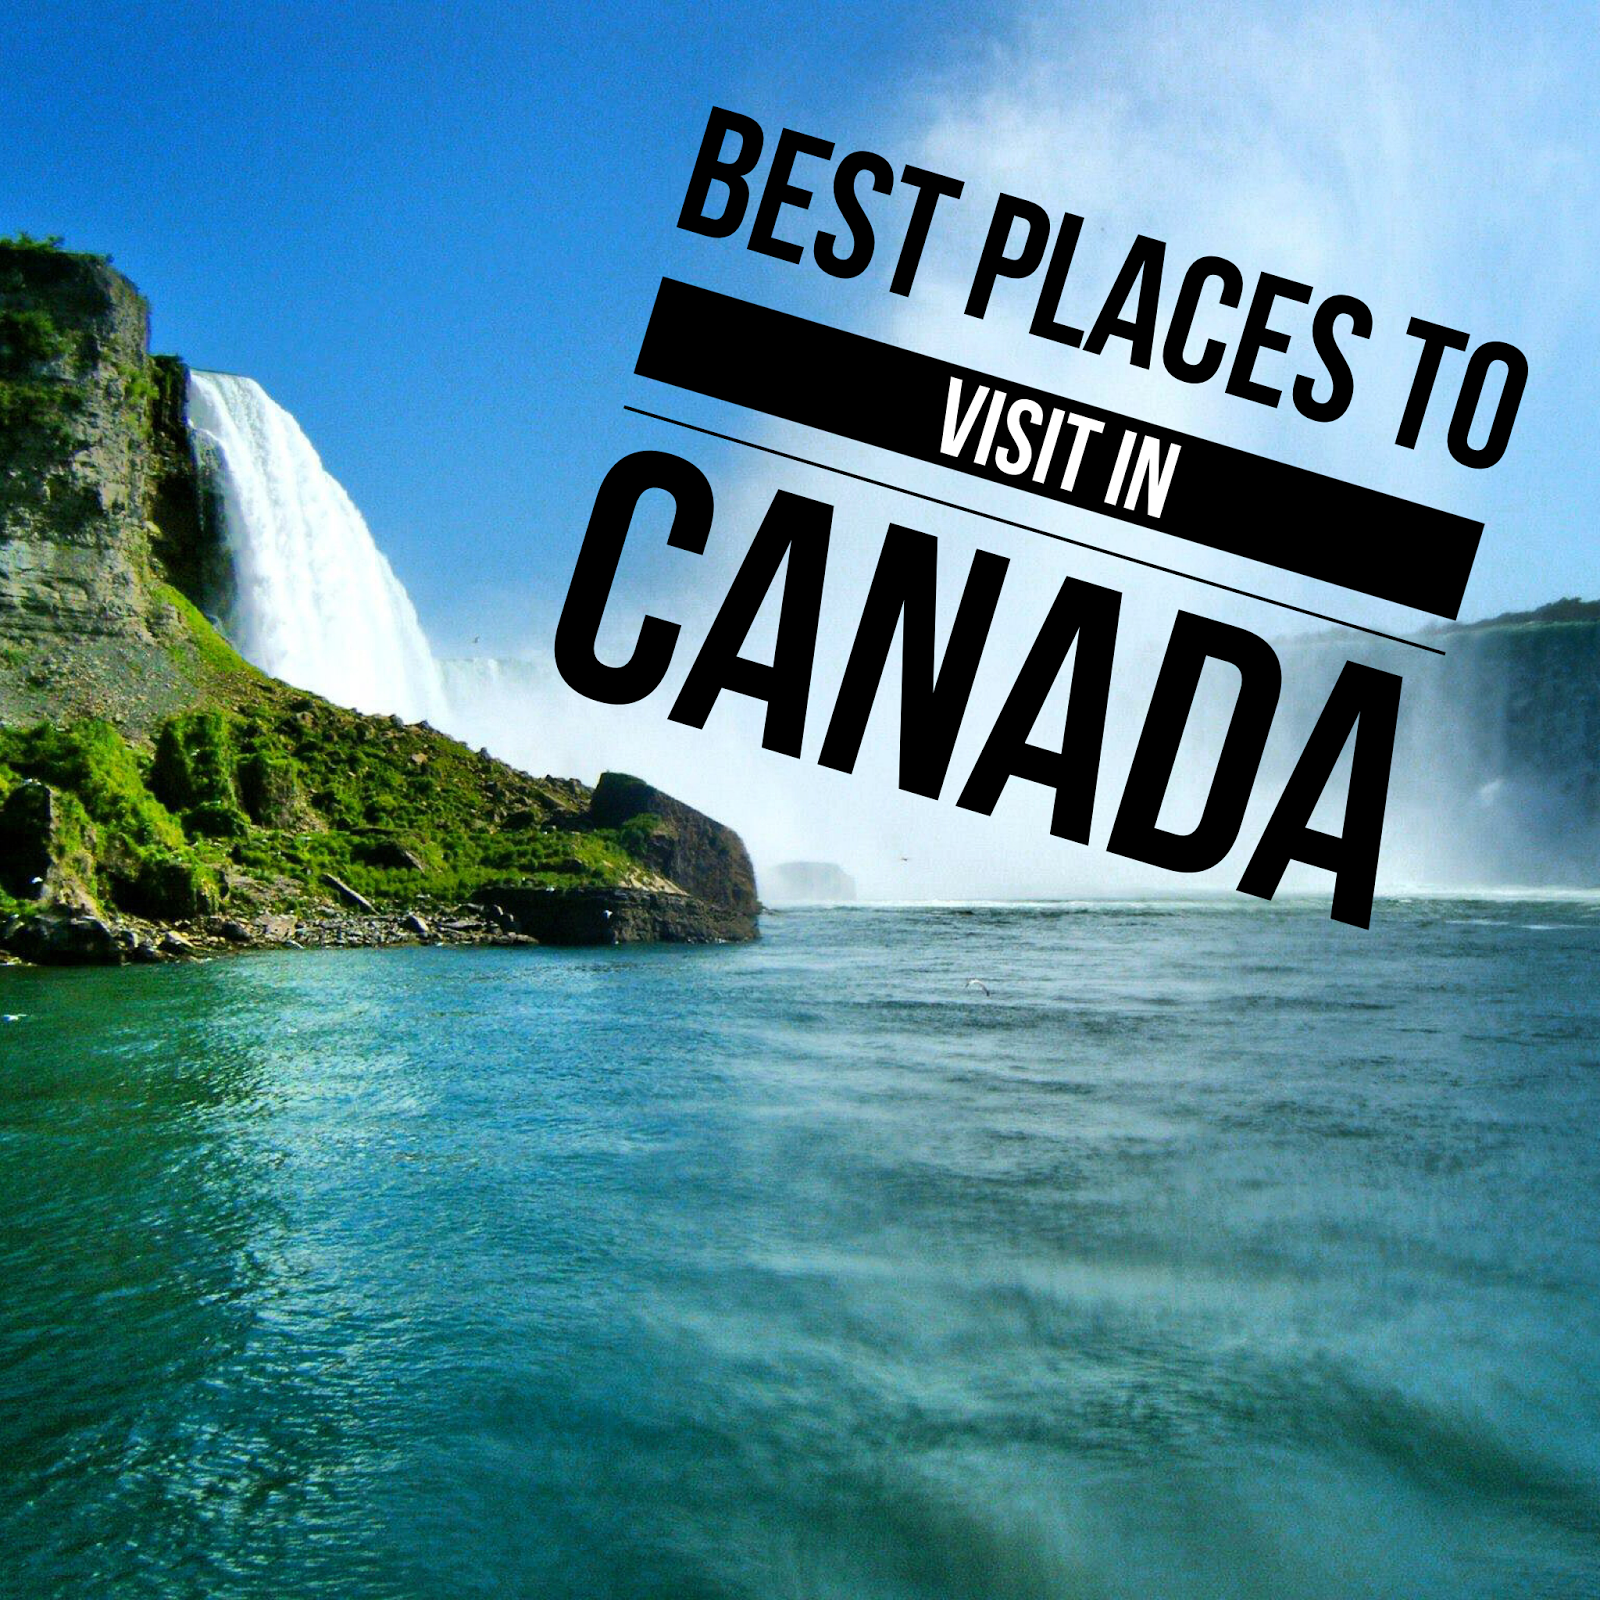 Best Places To Visit In Canada - Part 1